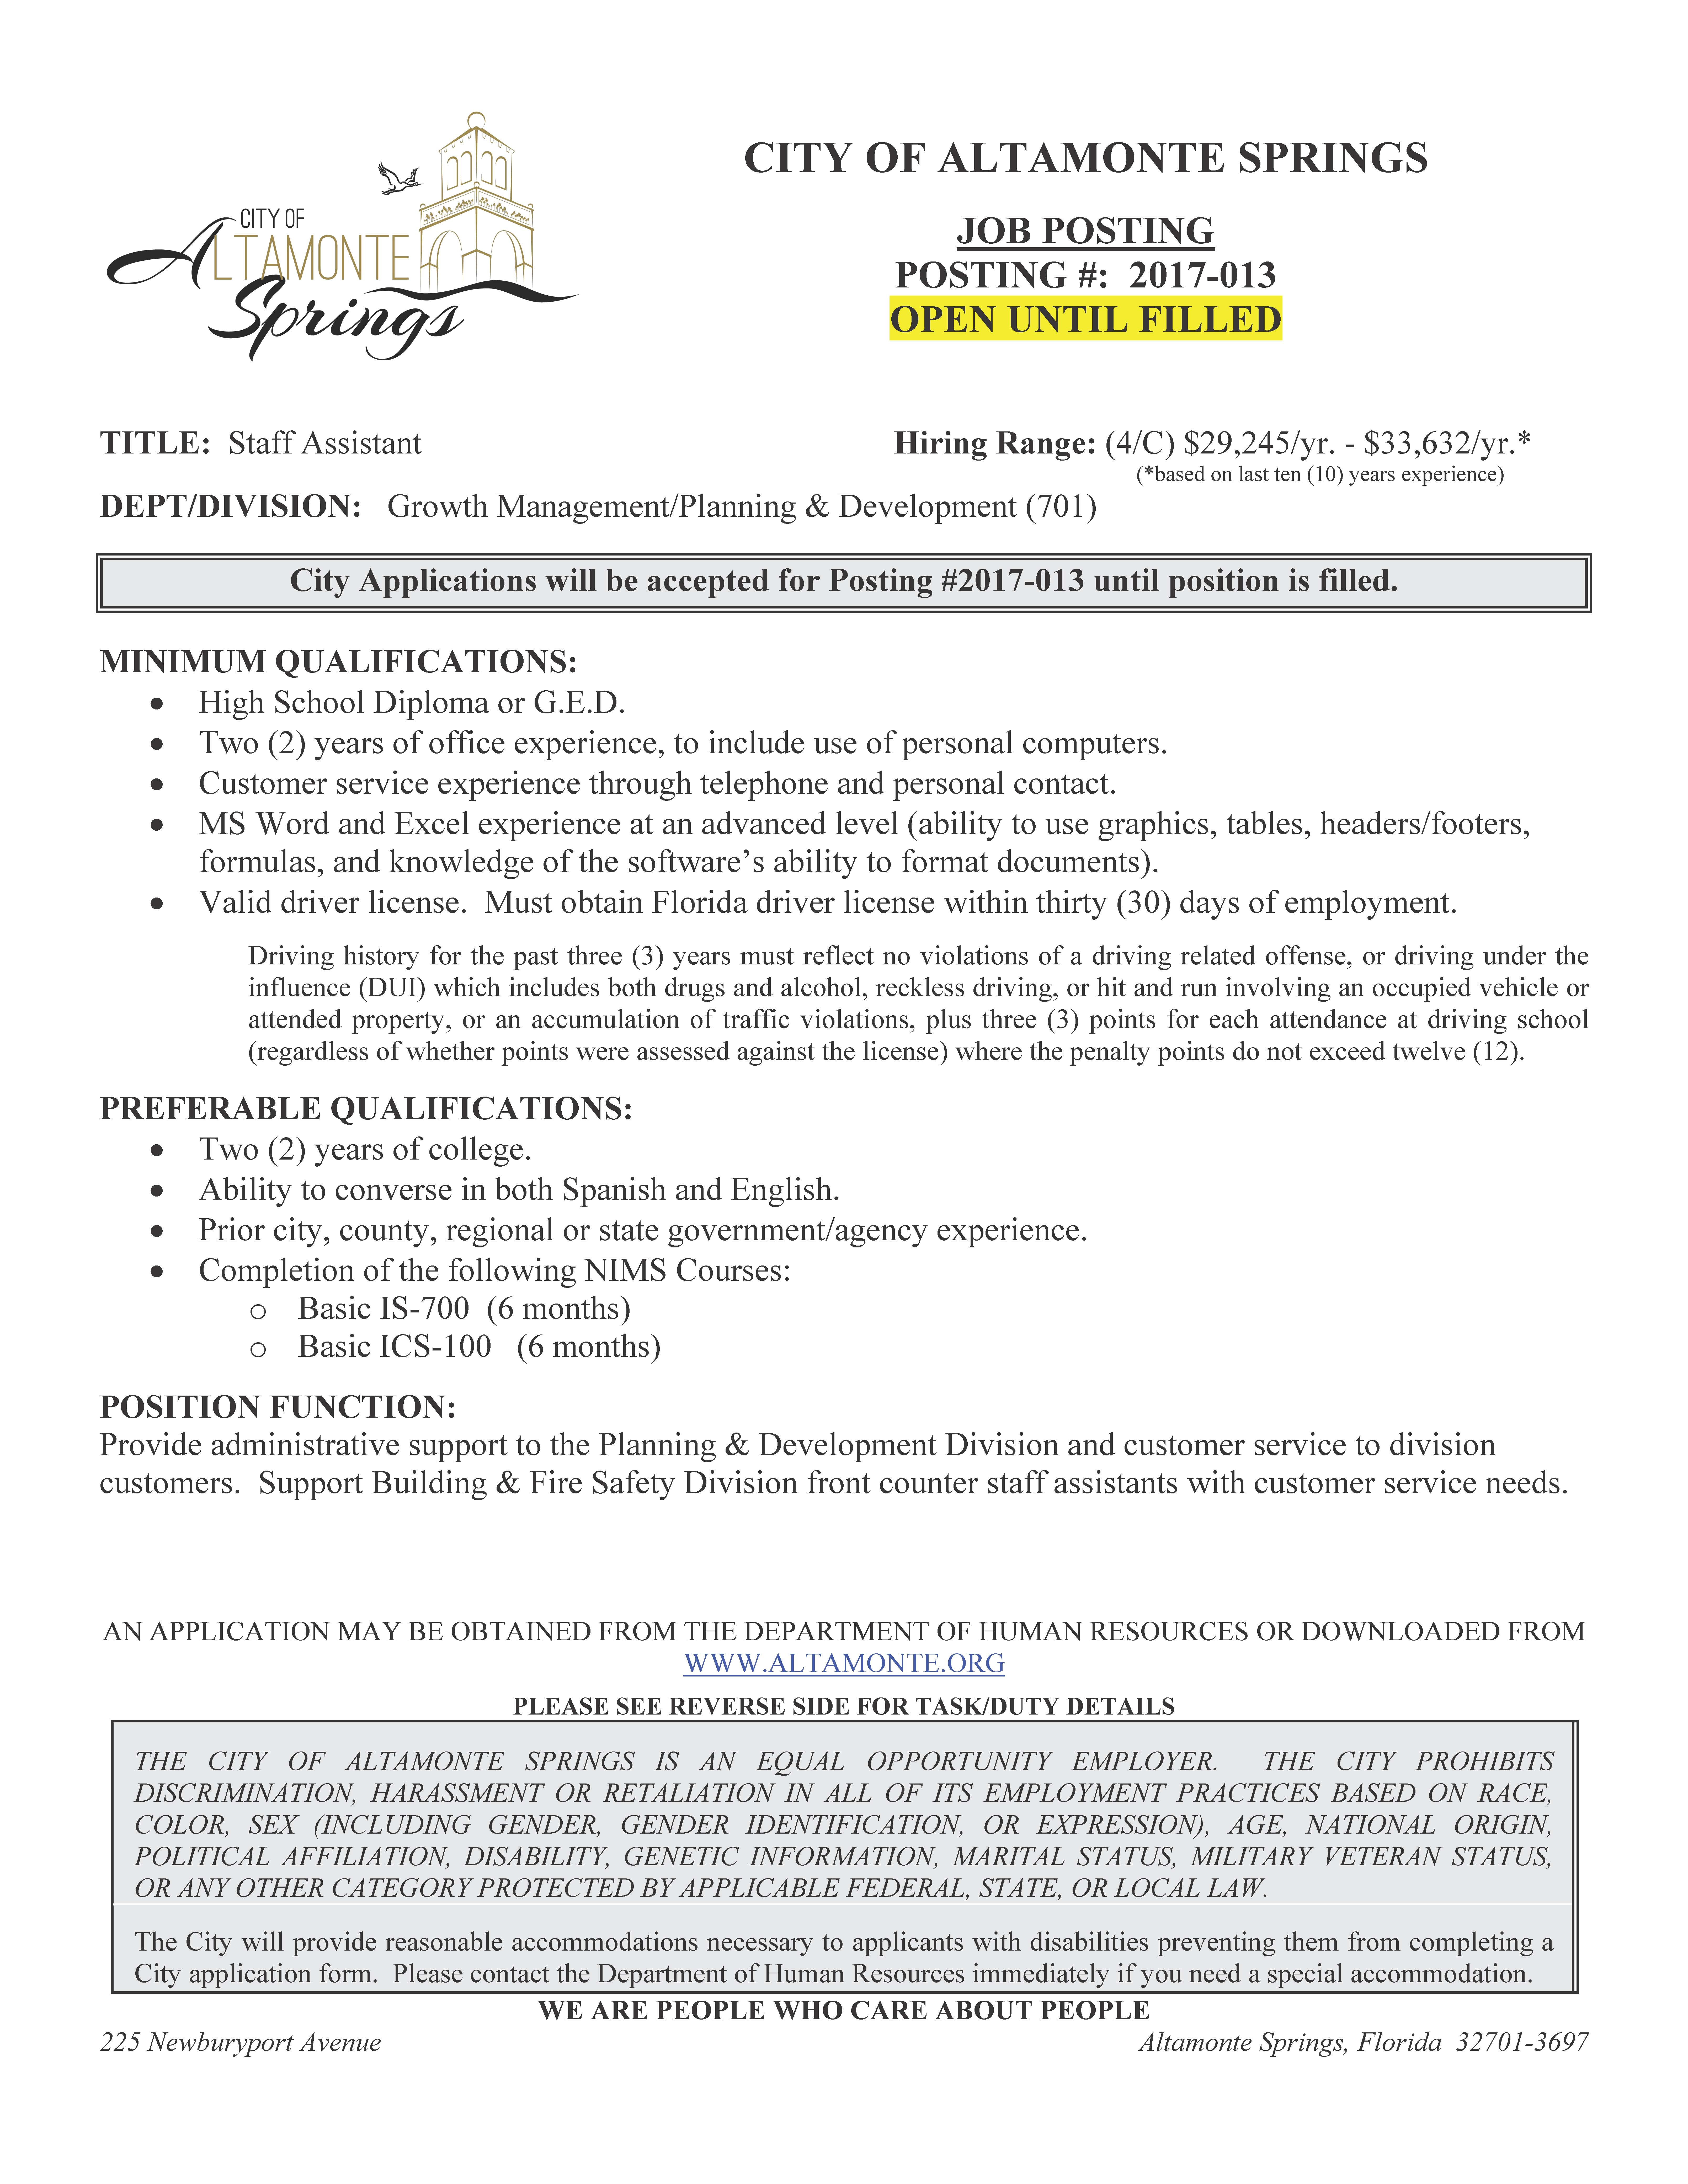 City of Altamonte Springs Hiring Staff Assistant